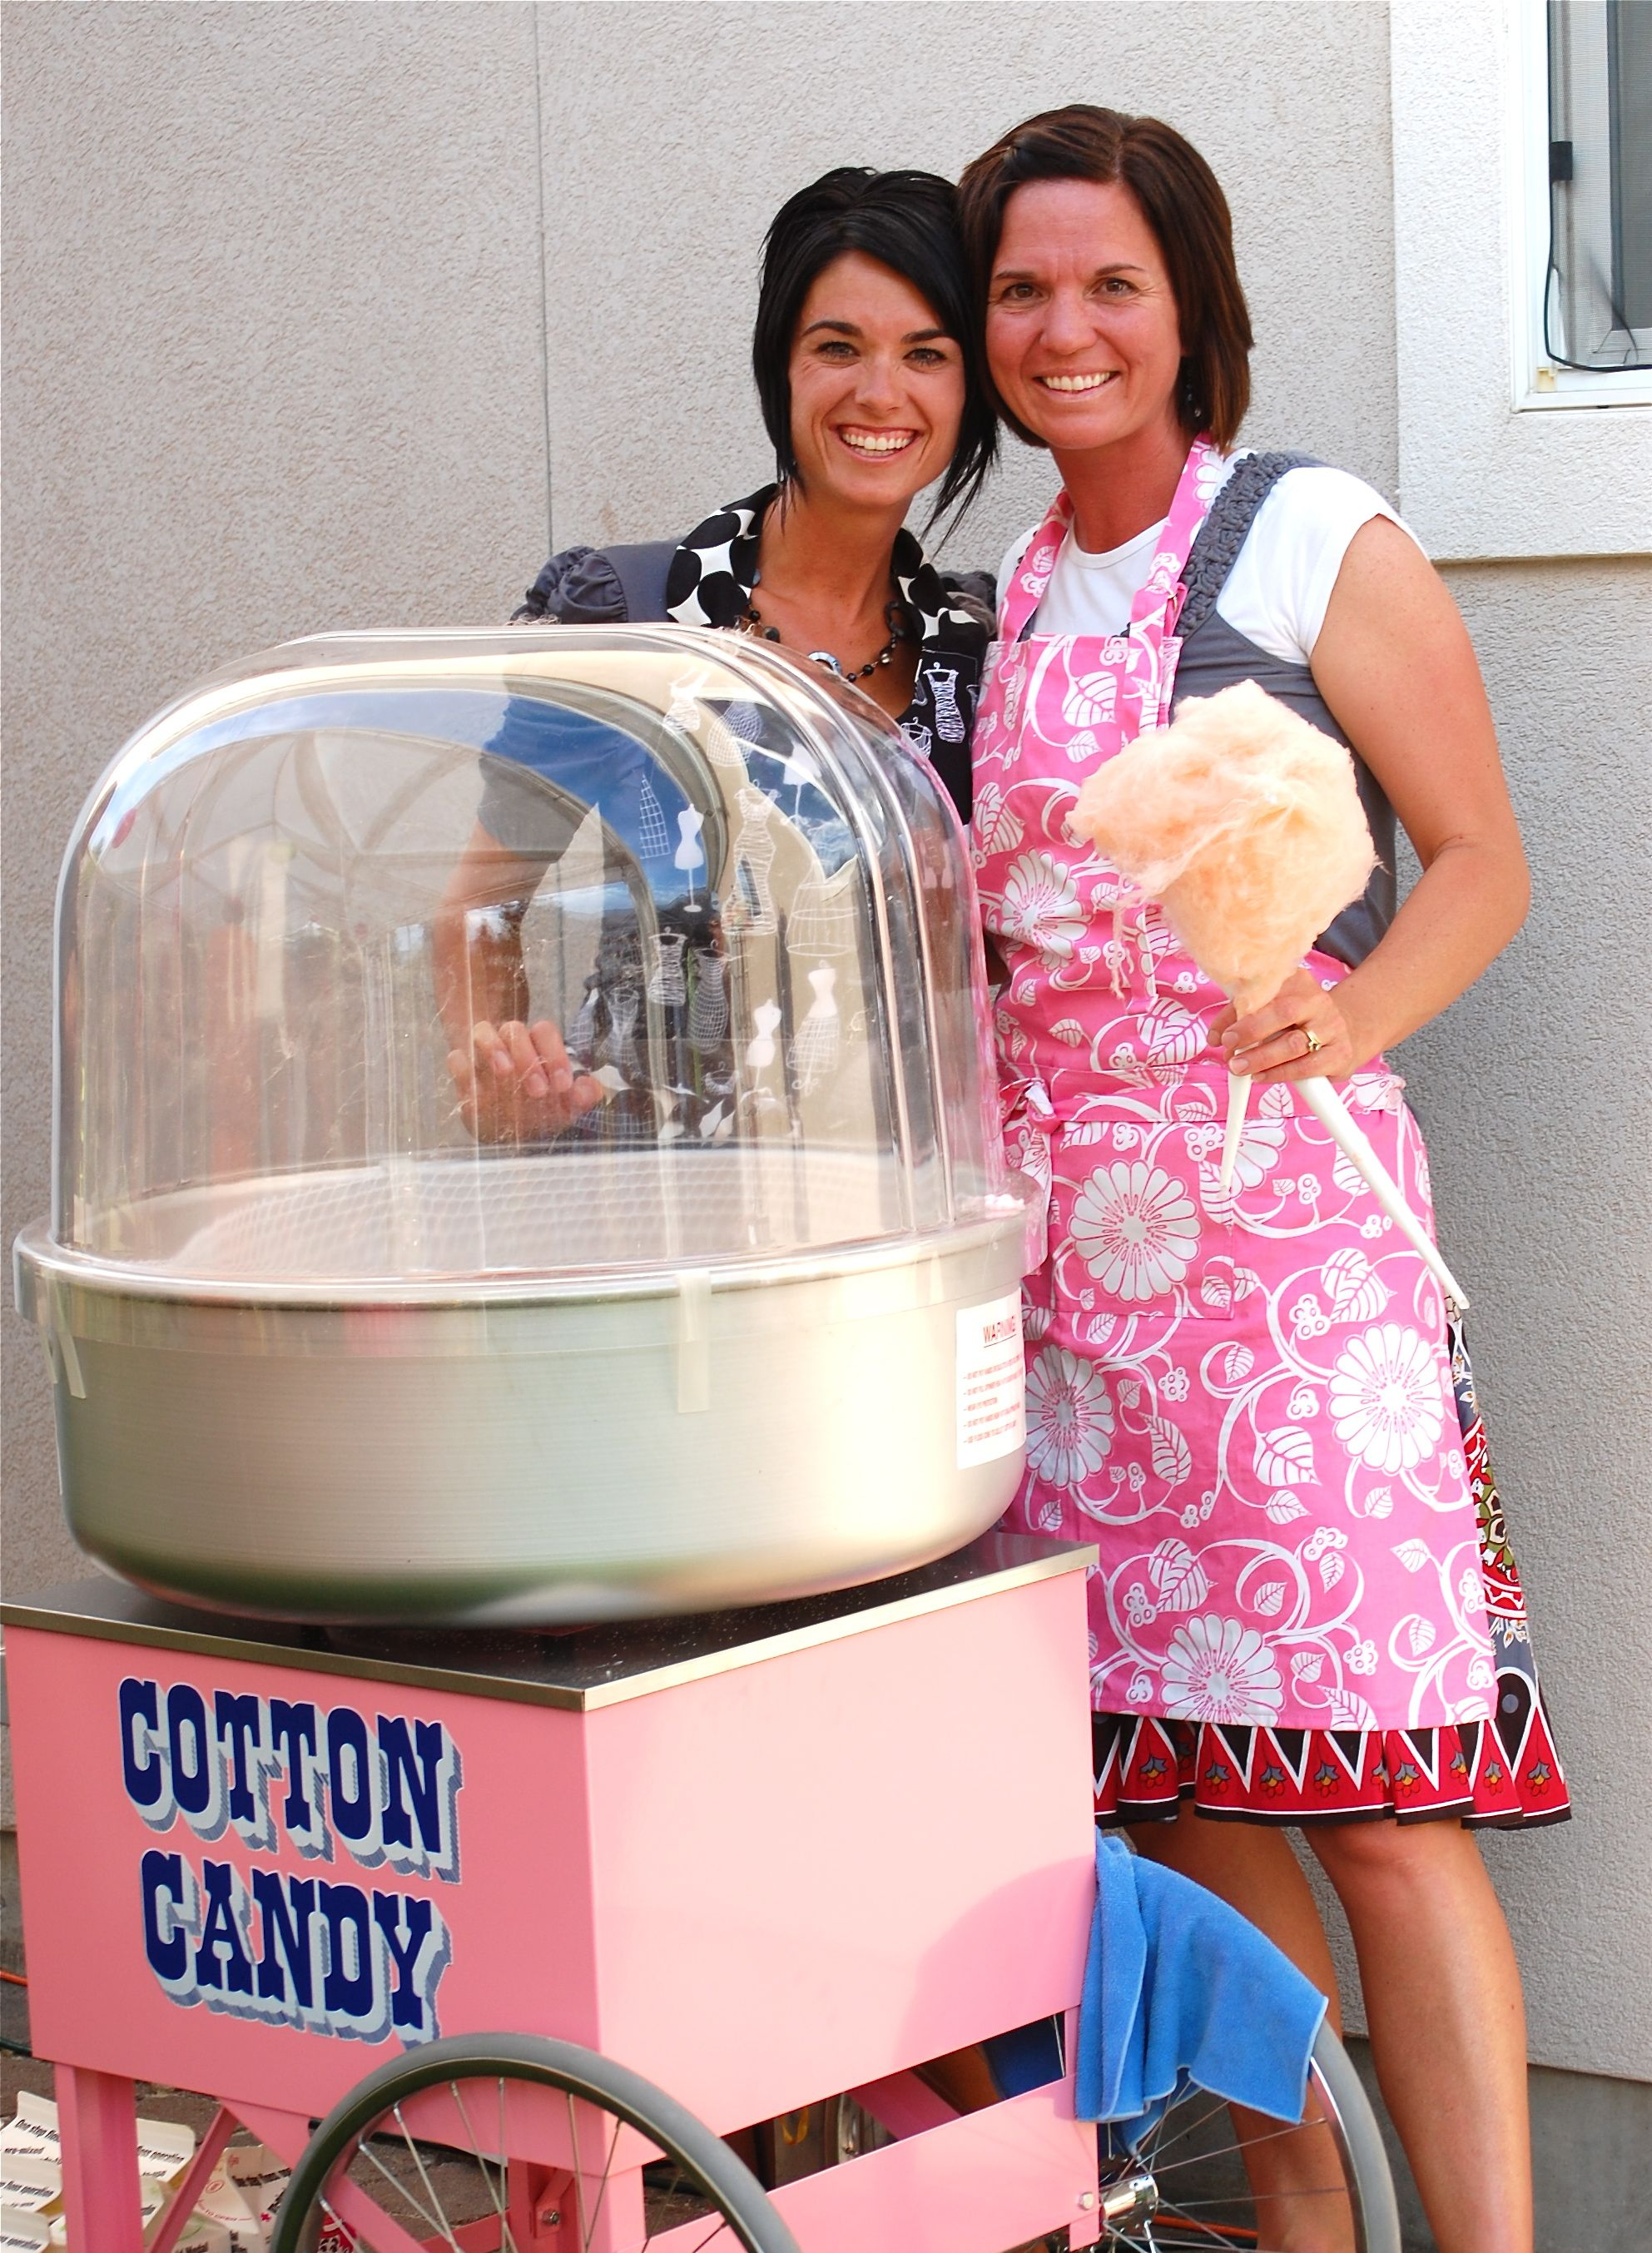 Cotton candy machine its the same one from my candy store